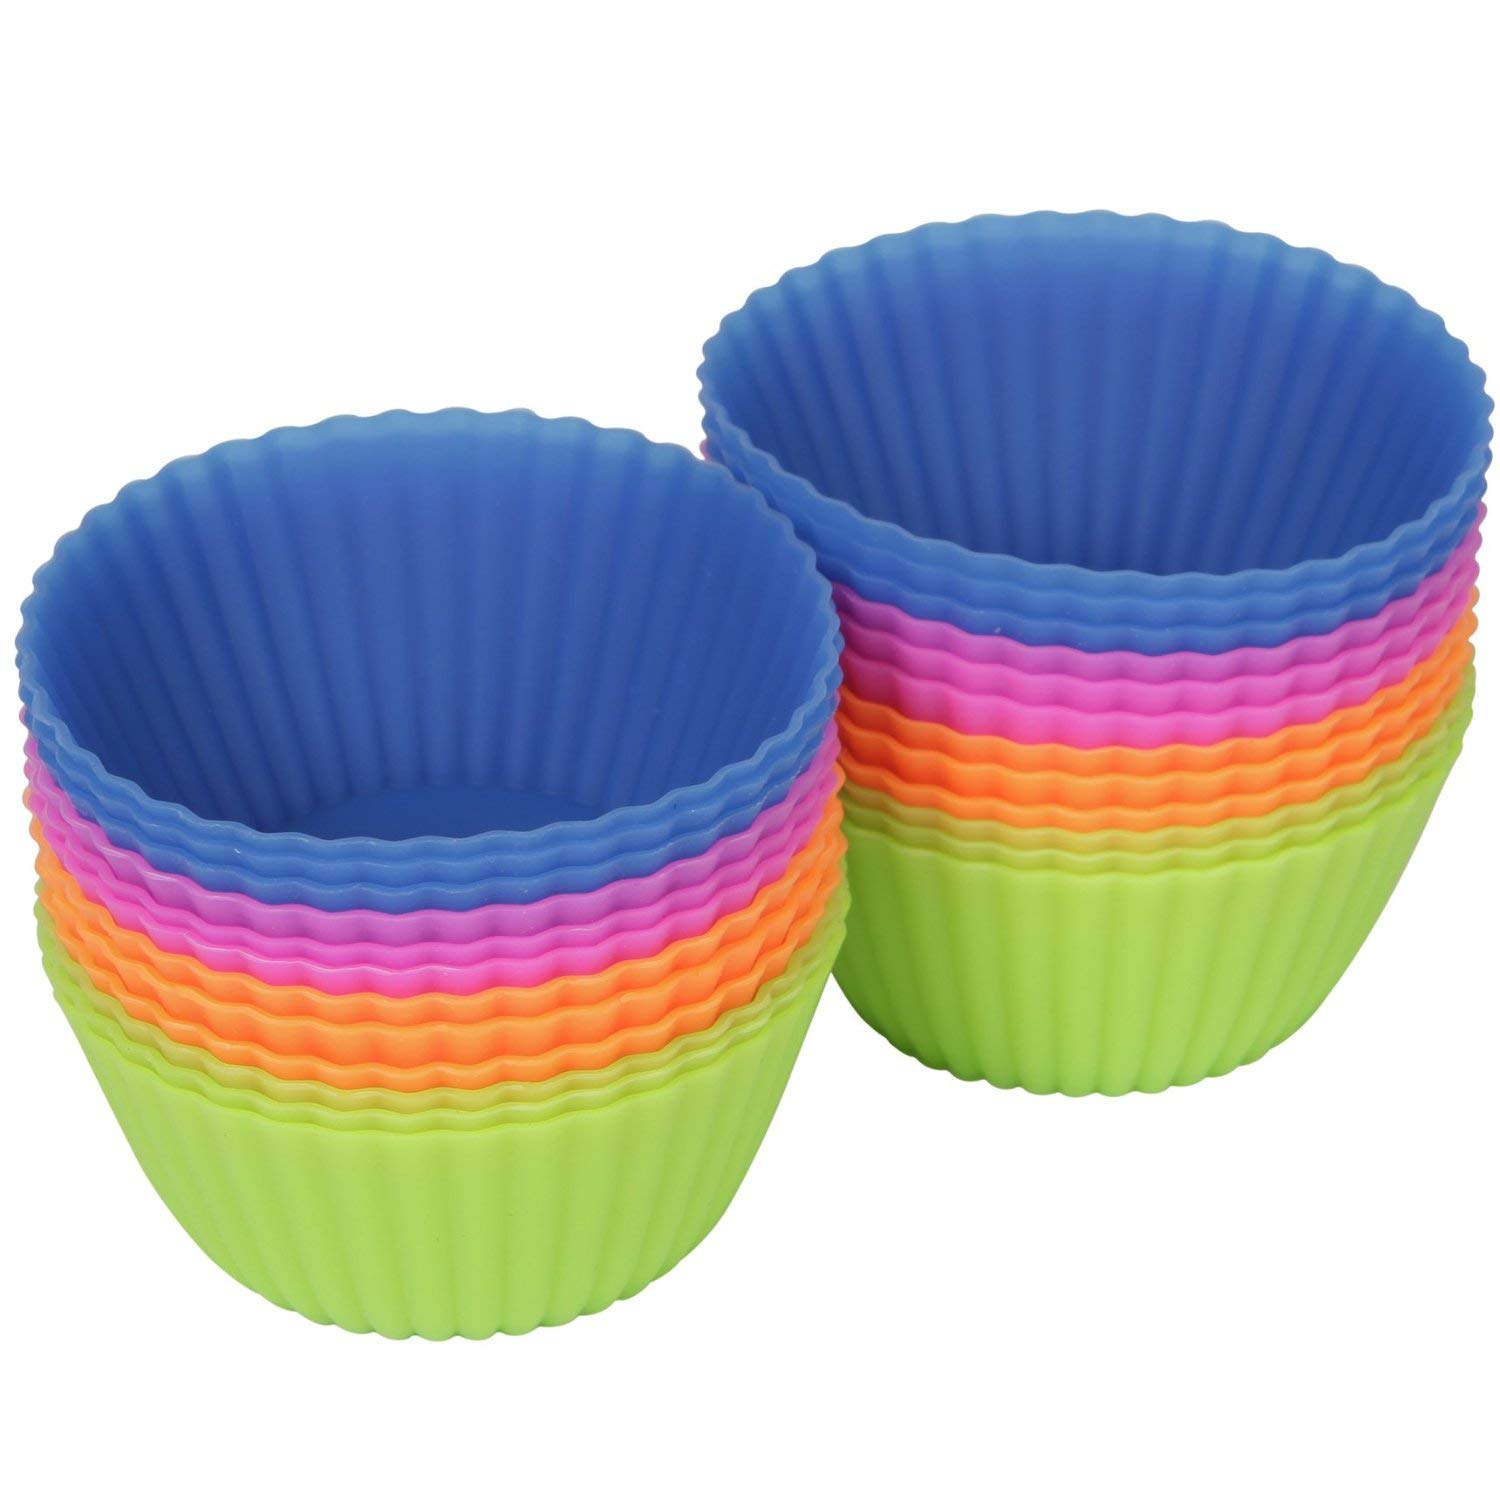 GT Market plus Reusable Silicone Baking Cups, Pack of 12. Cupcake, Silicone Cupcake Baking Muffin Cups